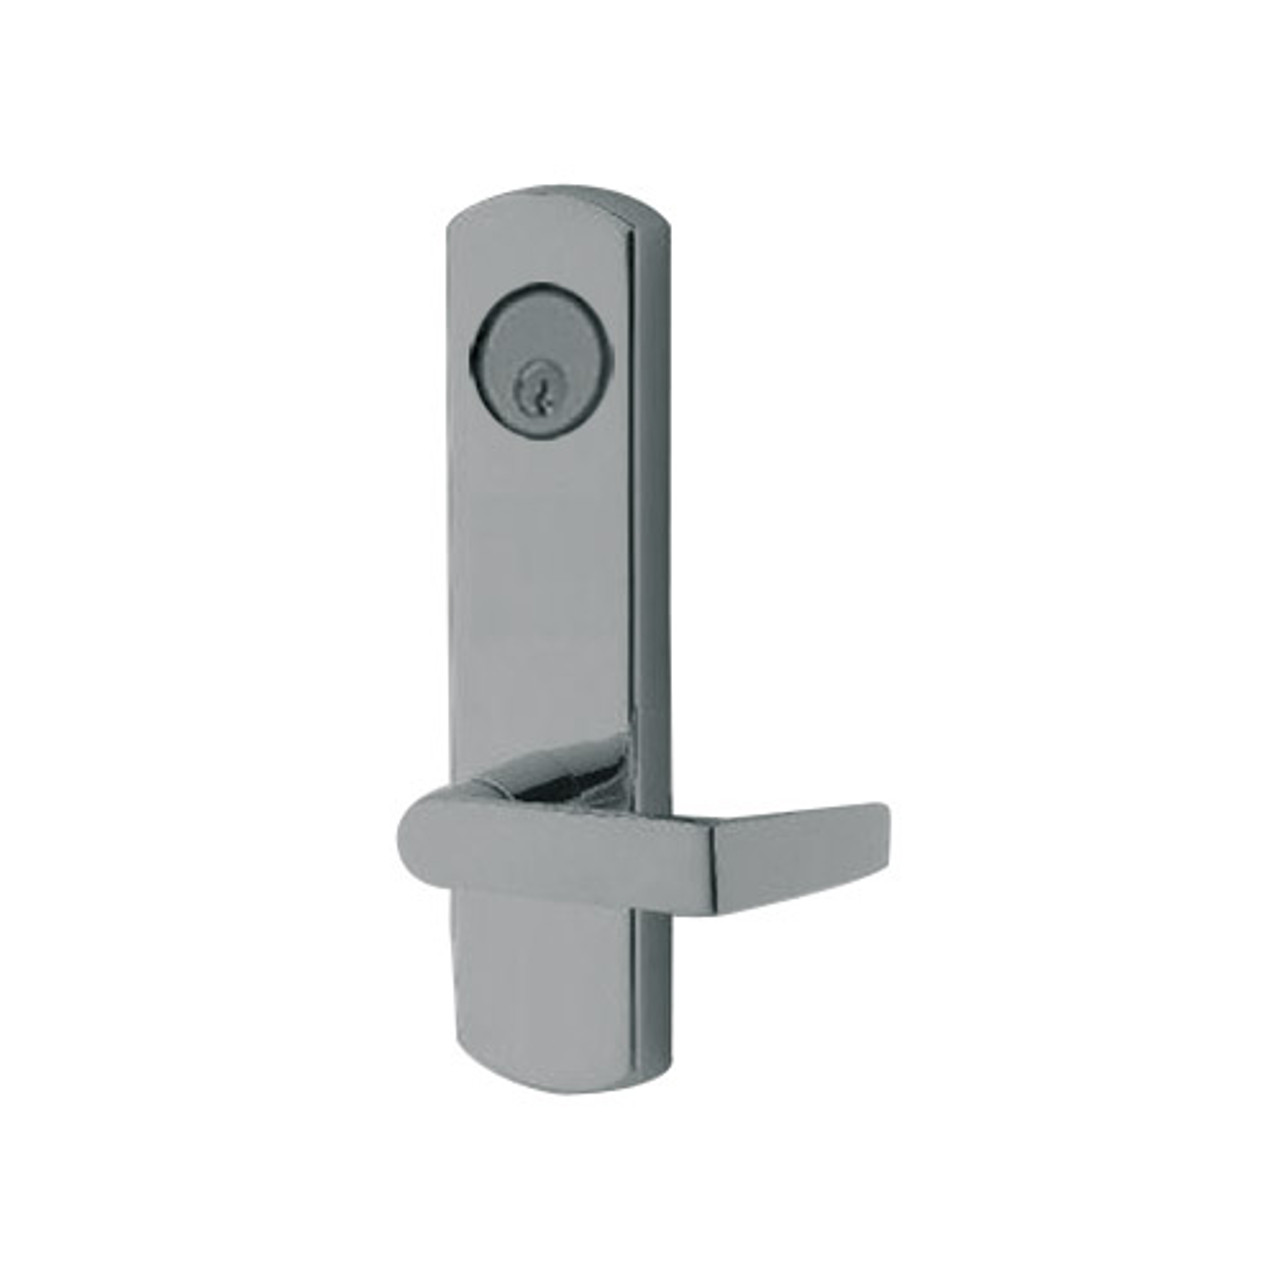 3080E-03-0-9U-30 US32D Adams Rite Electrified Entry Trim with Square Lever in Satin Stainless Finish